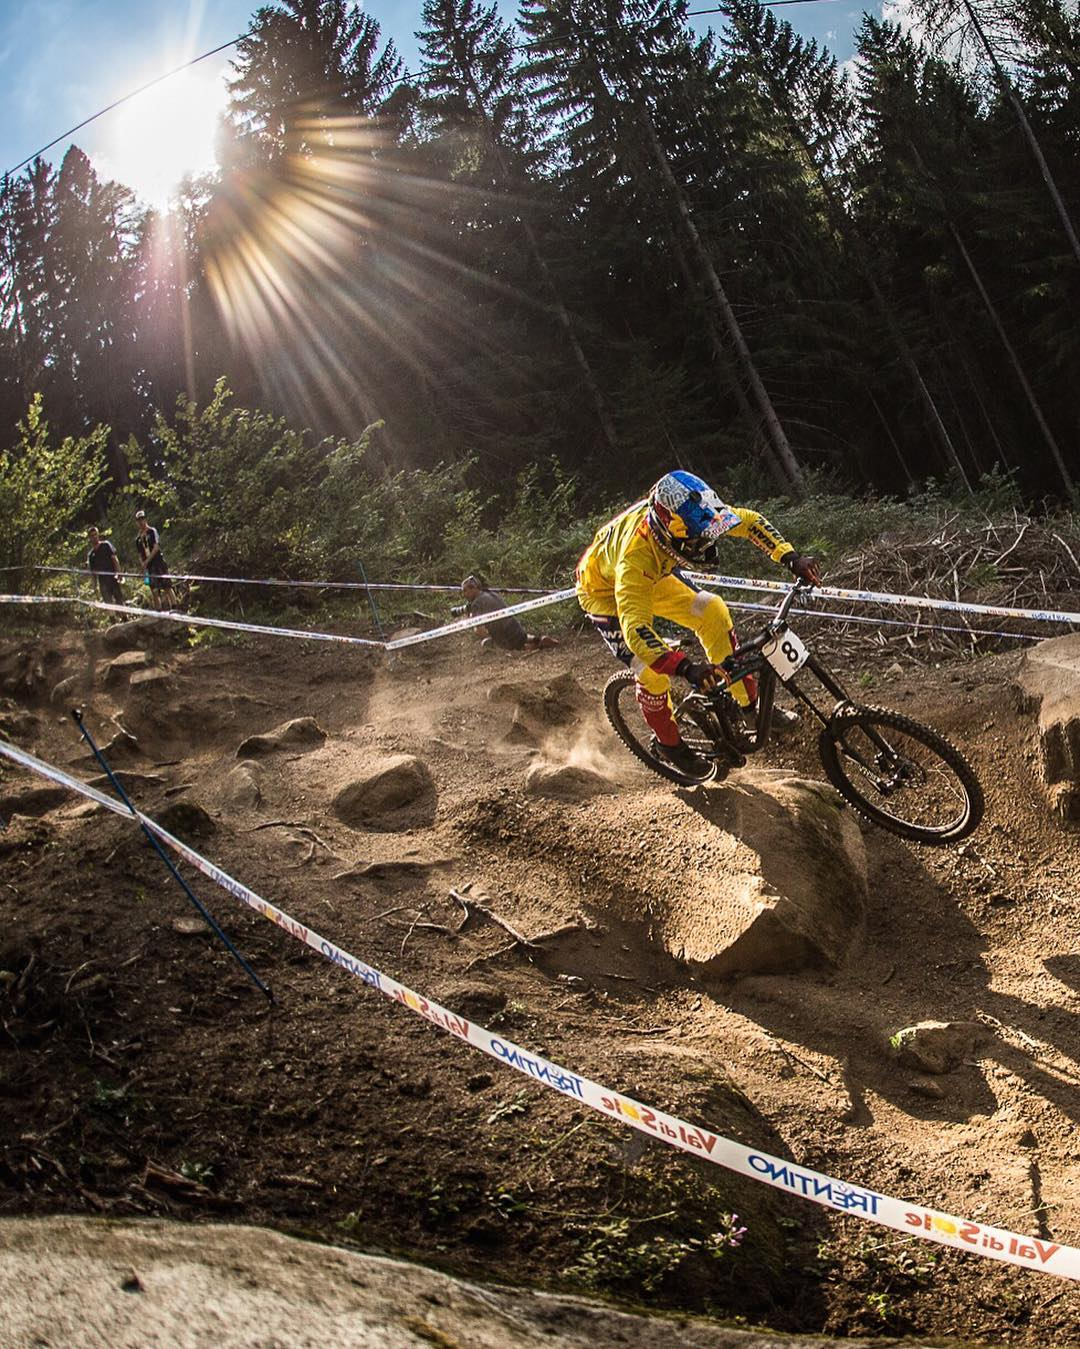 Tune in today to @redbulltv to see the UCI Downhill World Championships Live from Val Di Sole.